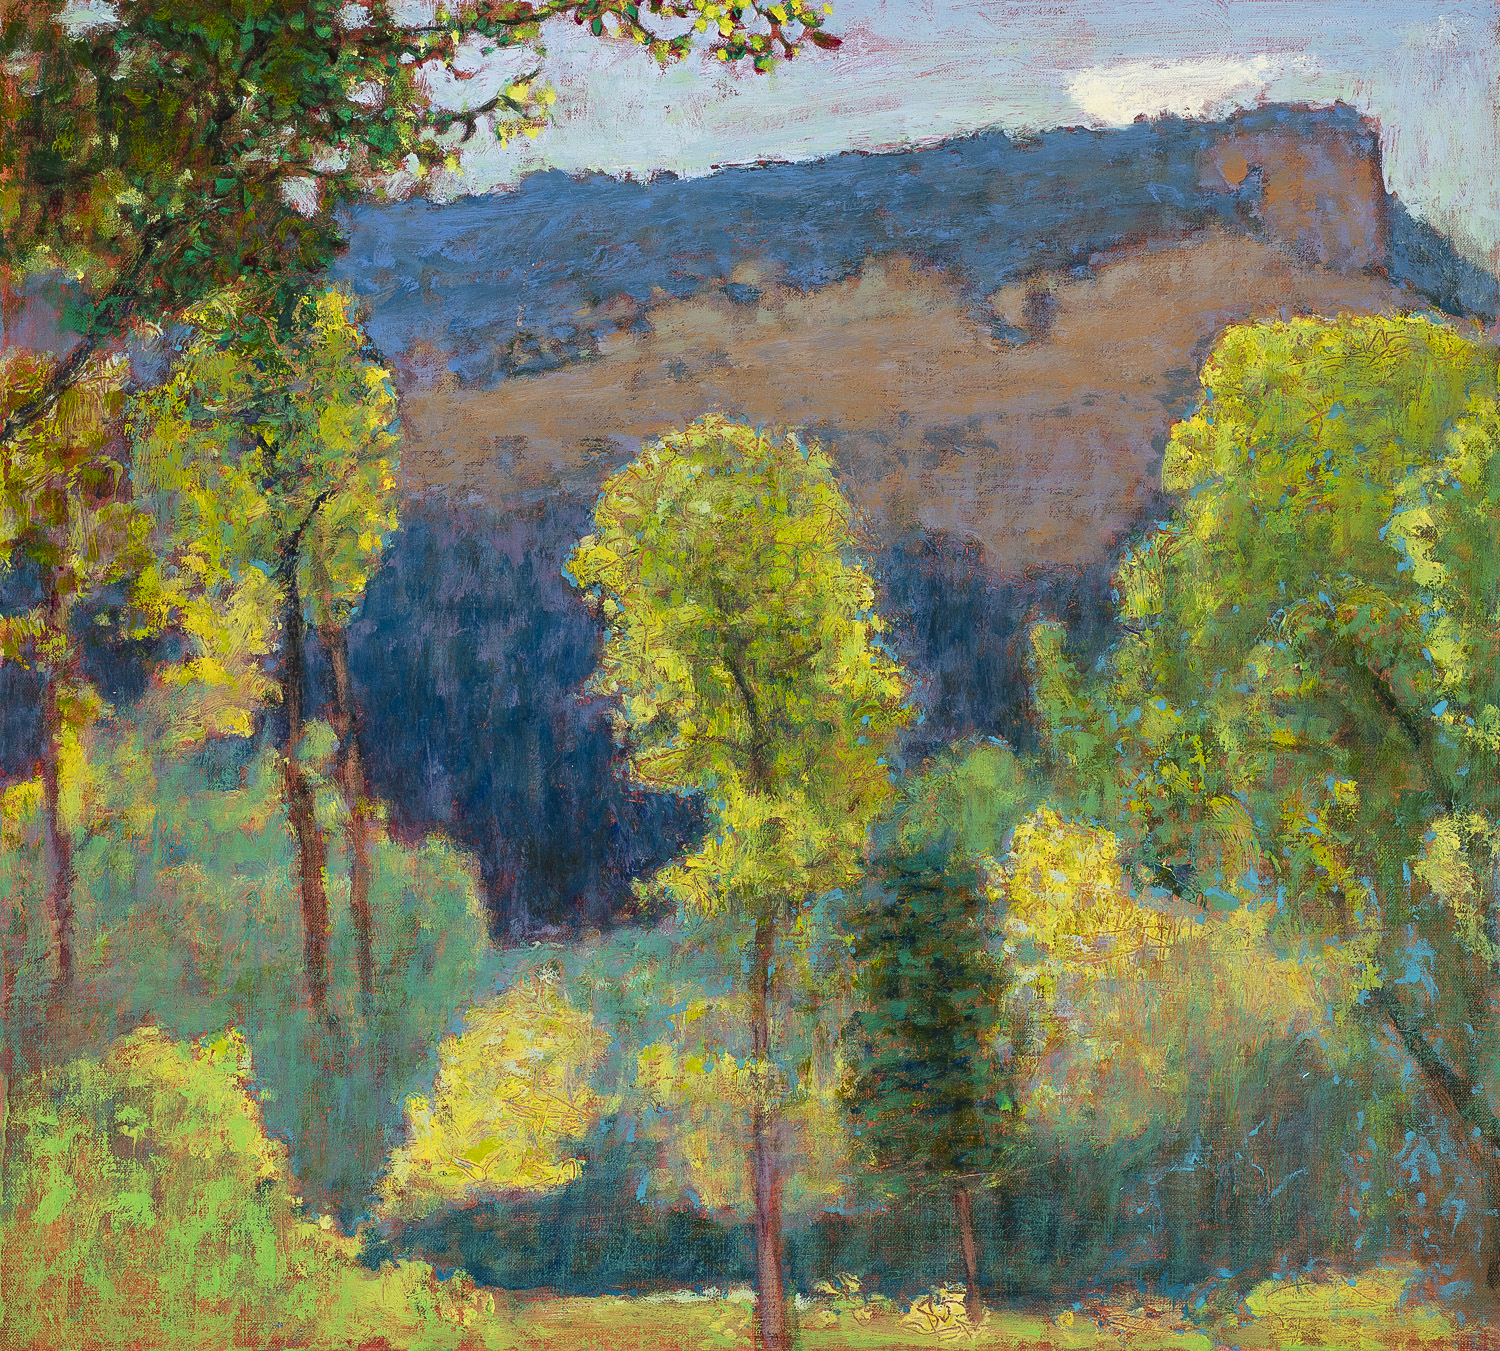 Gallina Canyon  | oil on linen | 18 x 20"